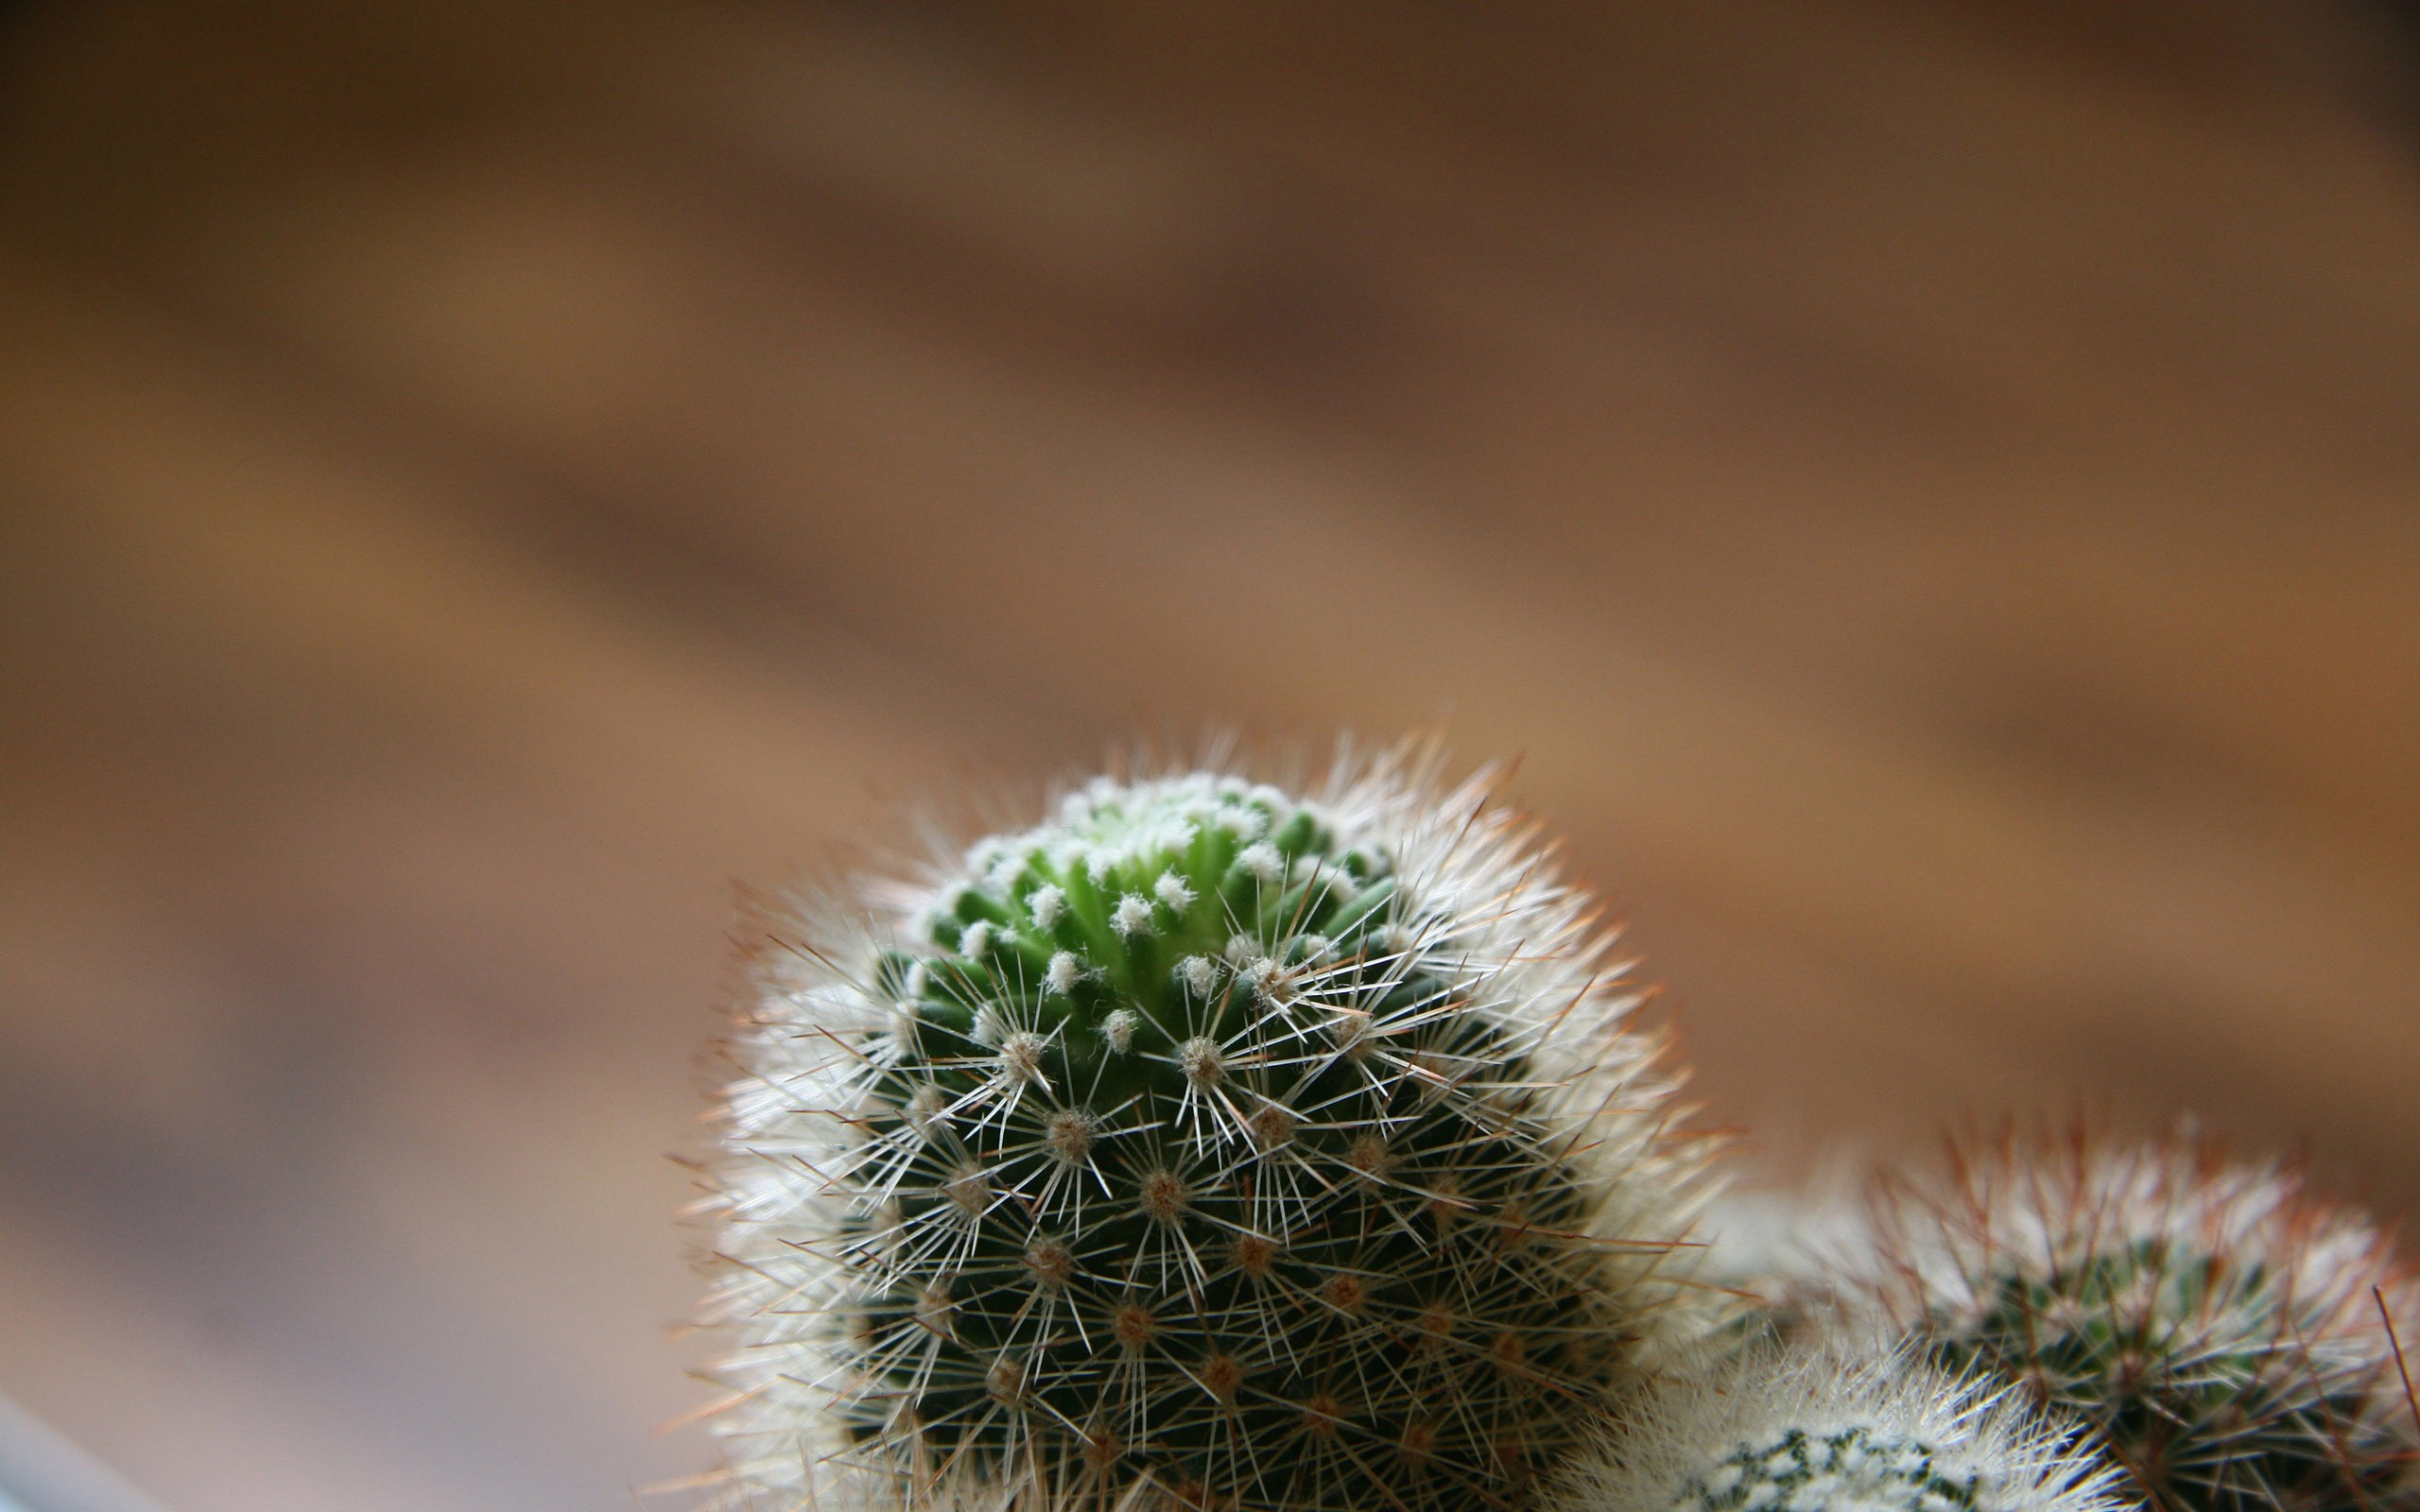 hd cactus wallpapers - photo #7